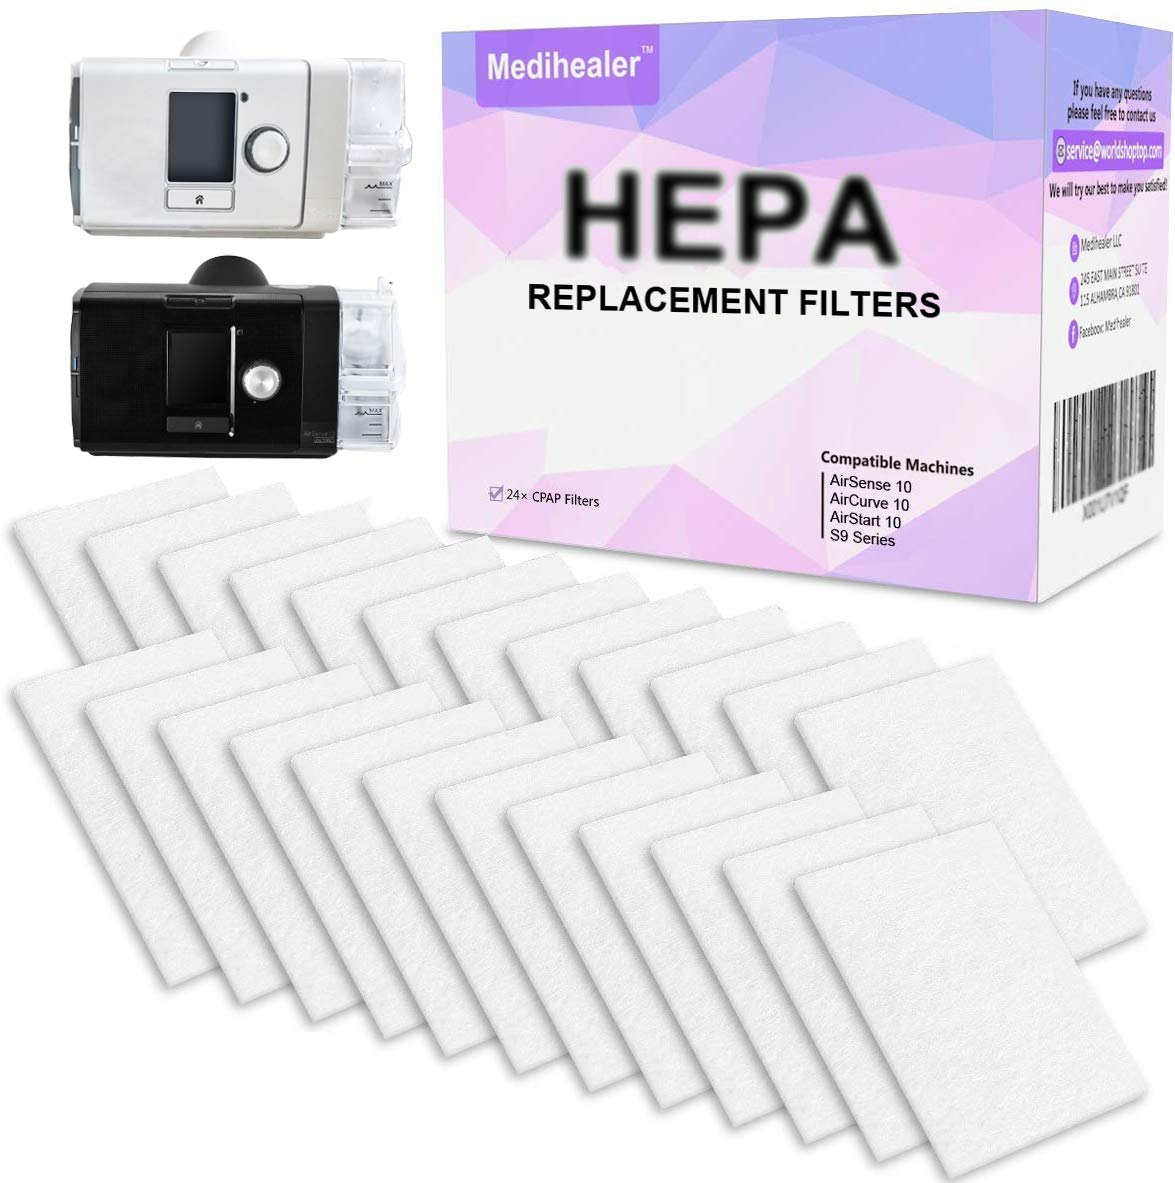 Medihealer HEPA CPAP Filters for Resmed(One-Year-Supply) - Premium Filters for Resmed AirSense 10 - AirCurve 10- S9-AirStart-Series Machines - Medihealer Replacement Filters Supplies-24 Packs